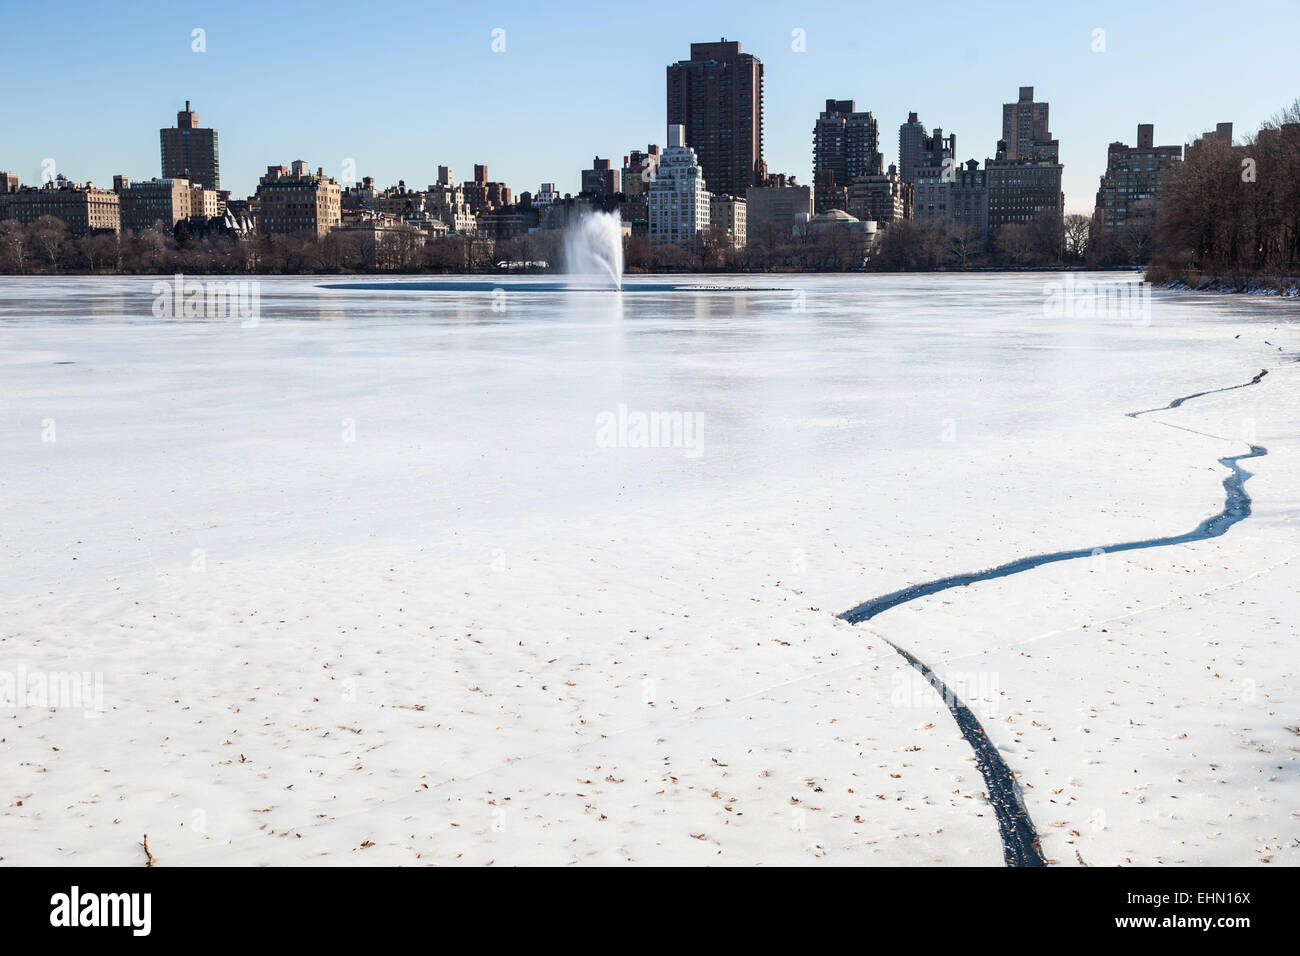 Artificial lake frozen of Central Park, New York City, USA. - Stock Image